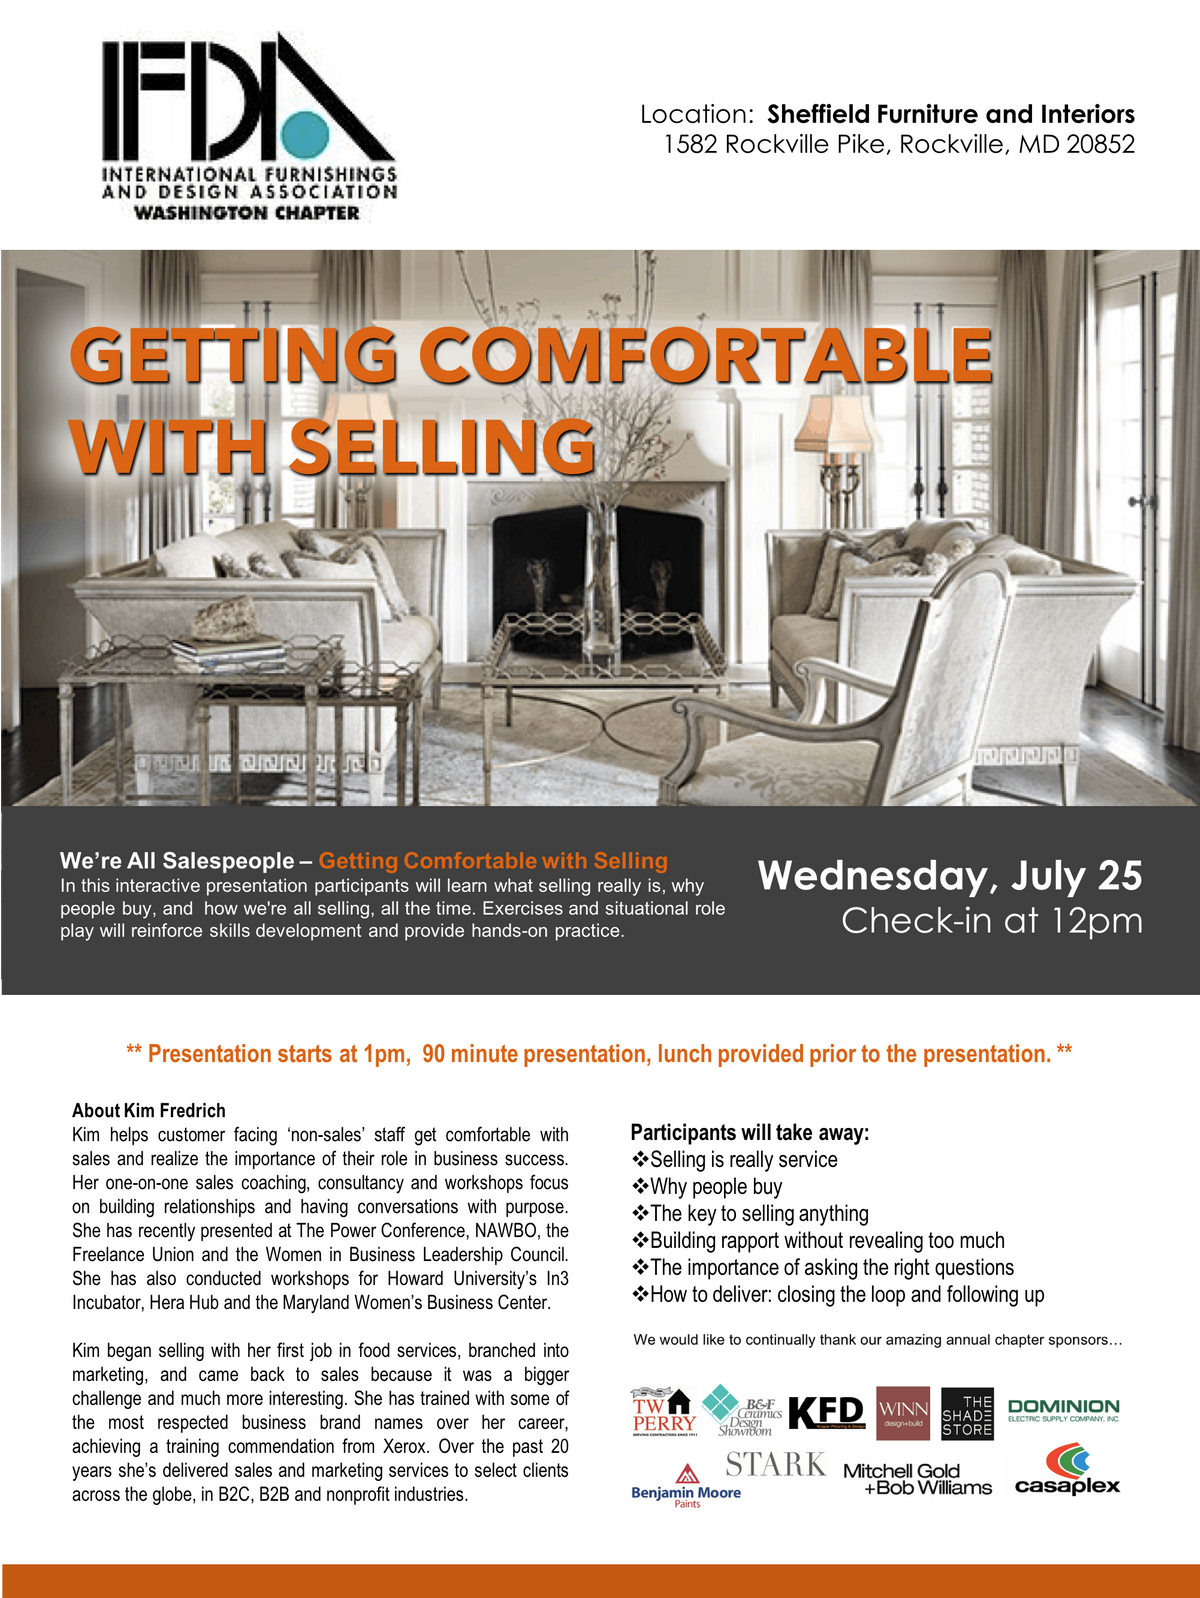 Getting Comfortable W Selling At Sheffield Furniture Interiors